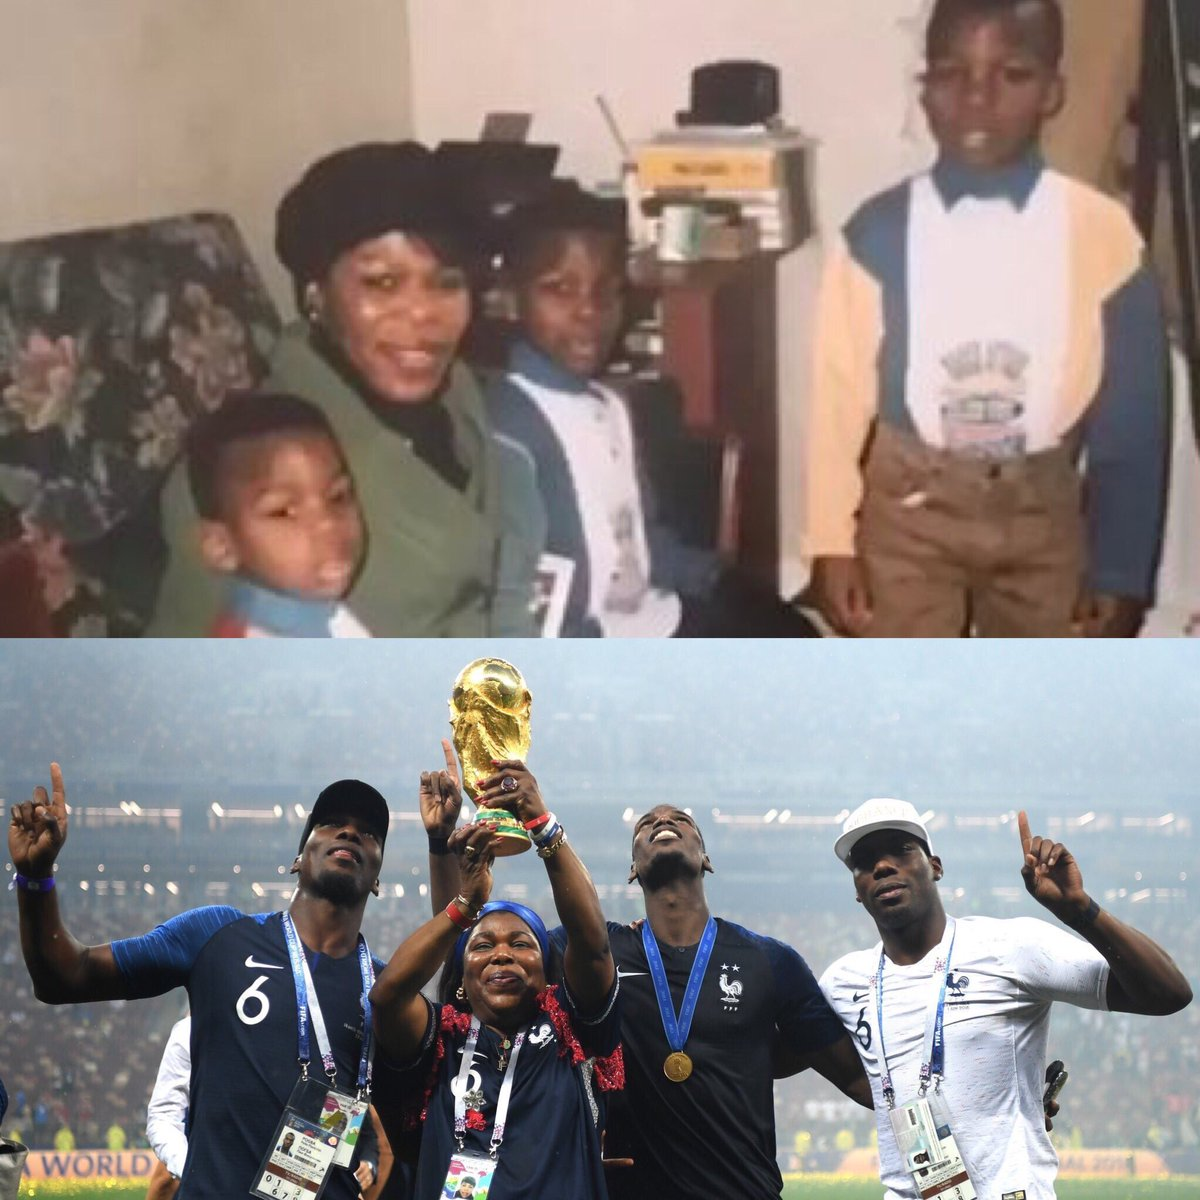 Paul Pogba His Mother And Brothers Then And Now